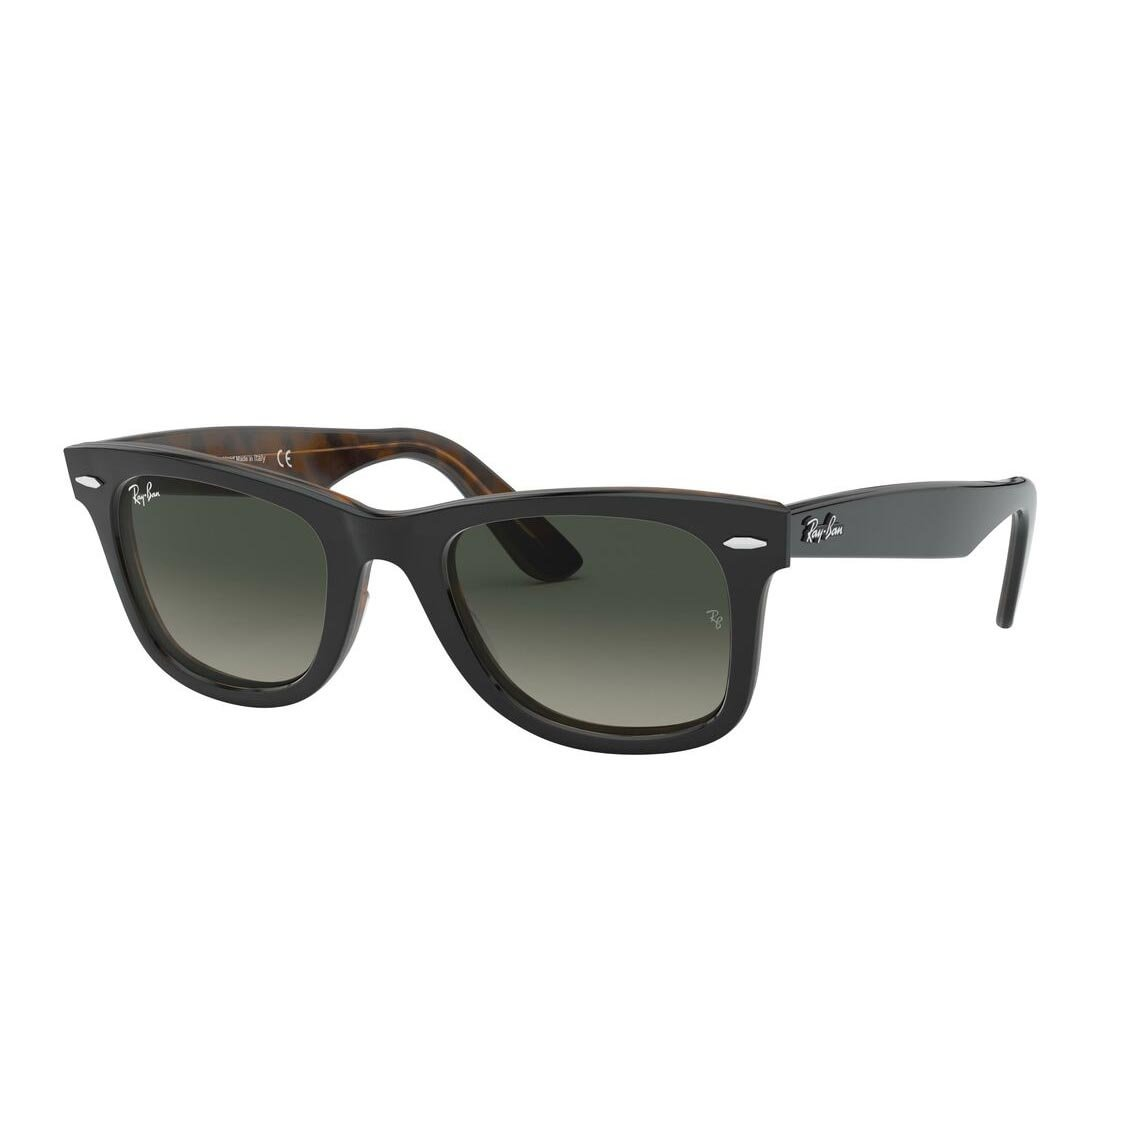 Ray-Ban Original Wayfarer Color Mix RB2140 127771 5022